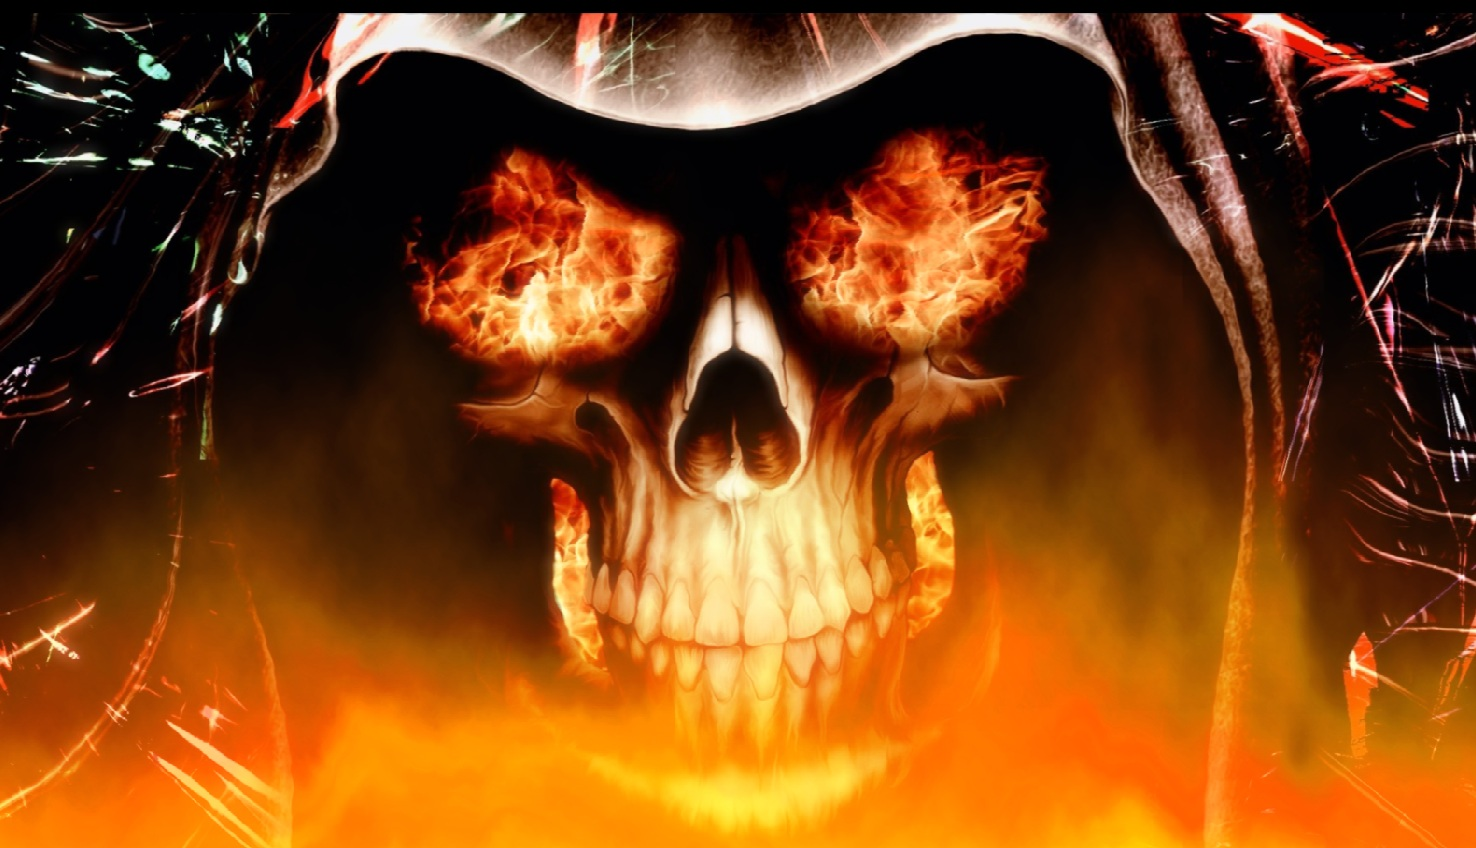 Free Flaming Skull Wallpaper - WallpaperSafari